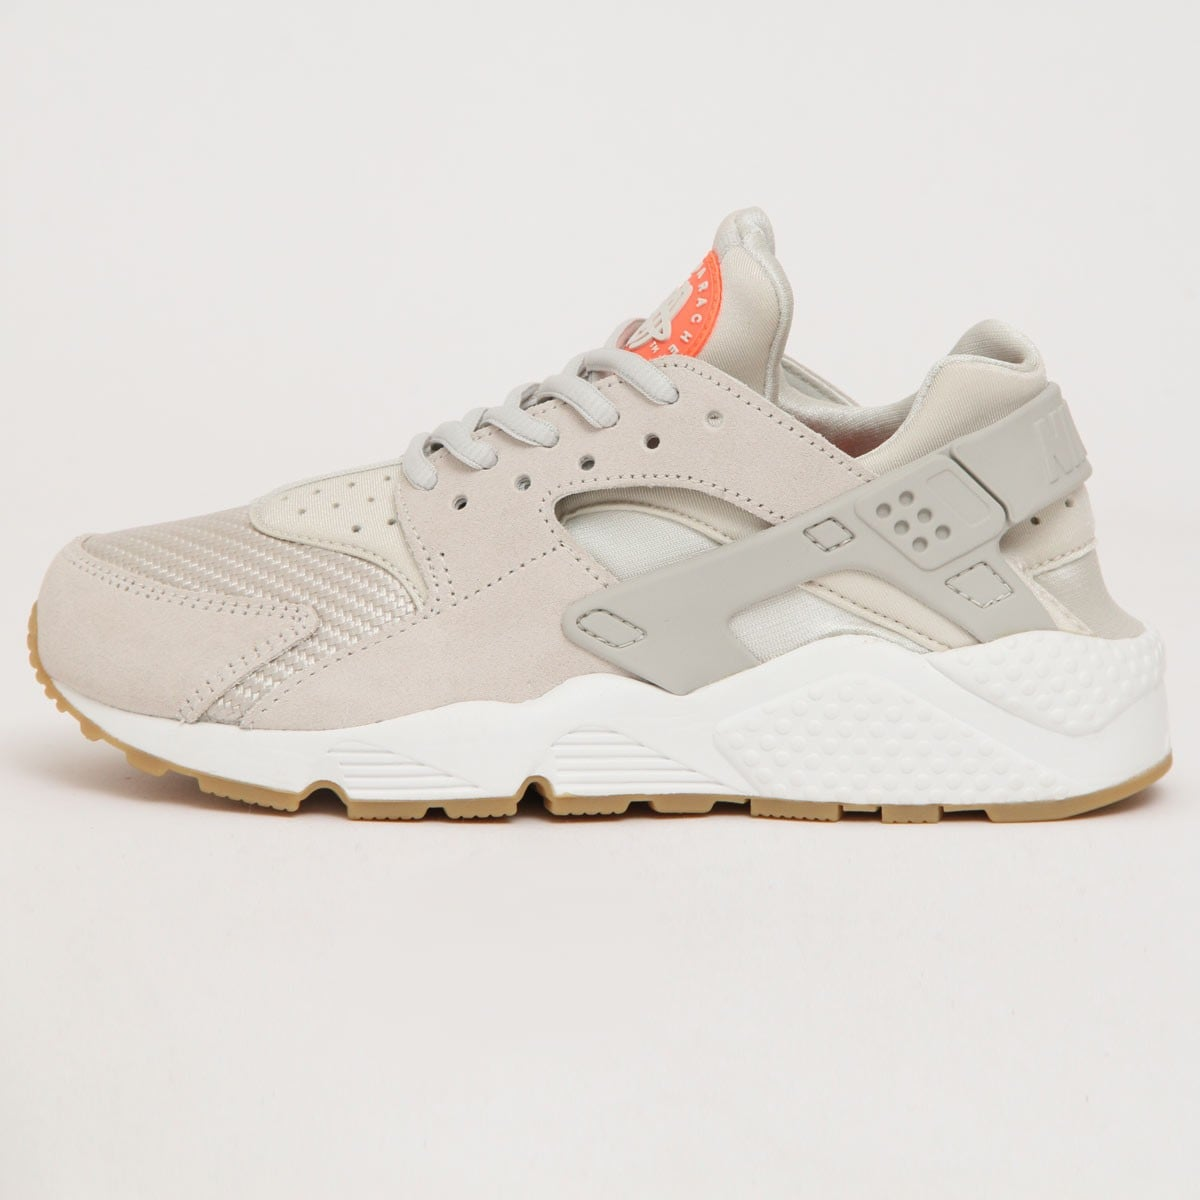 98fbc5175659 For The Ladies  Nike WMNS Air Huarache Textile